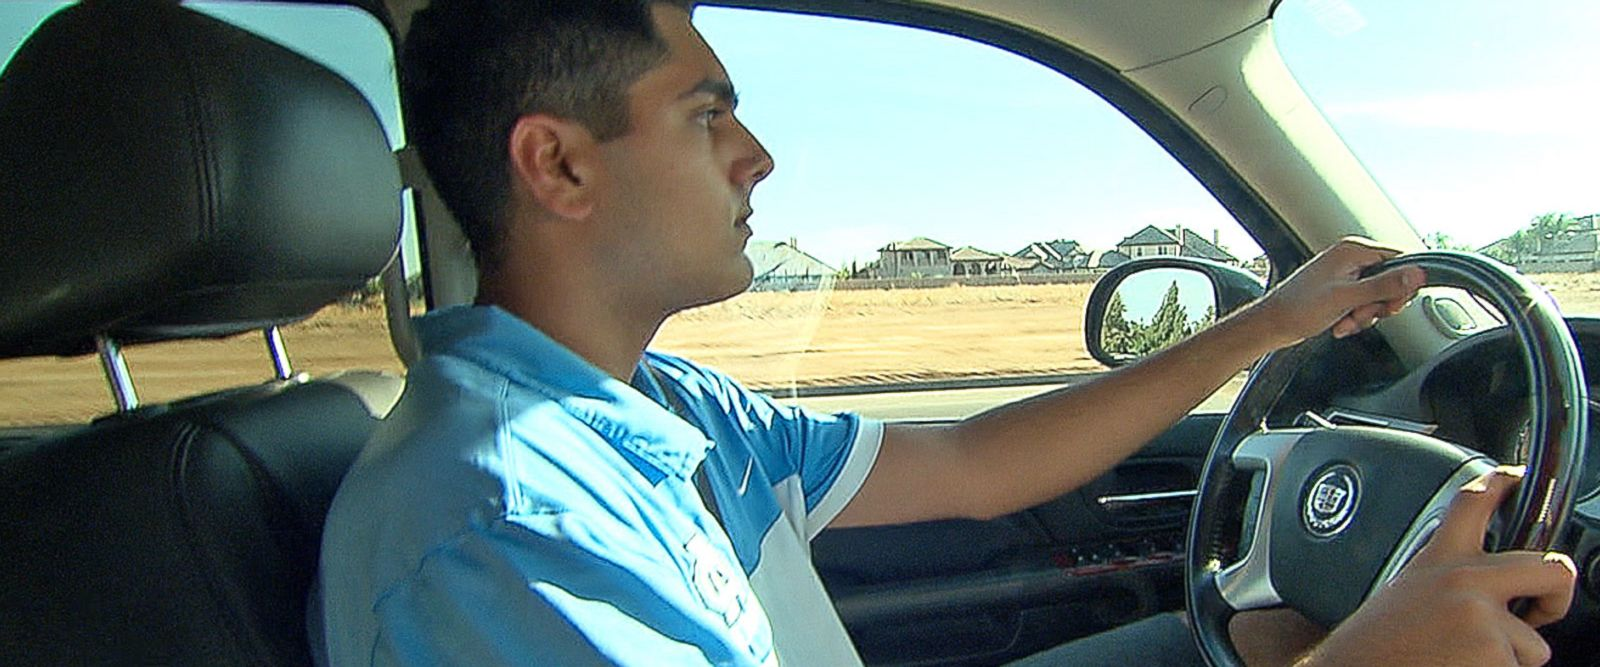 VIDEO: Protections that buyers may have when purchasing a car